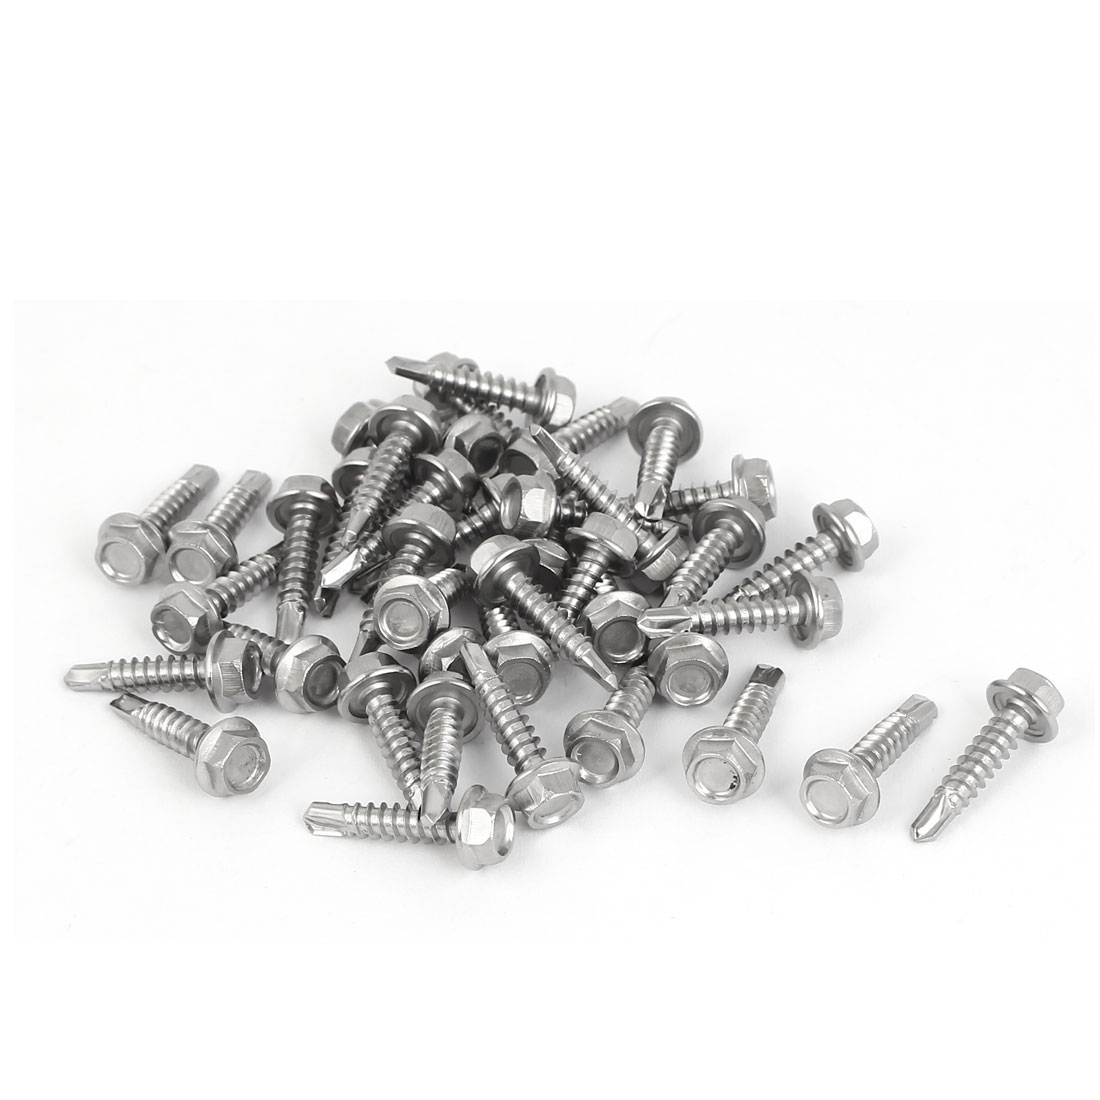 M4.2x19mm Thread 410 Stainless Steel Hex Washer Head Self Drilling Screws 40 Pcs